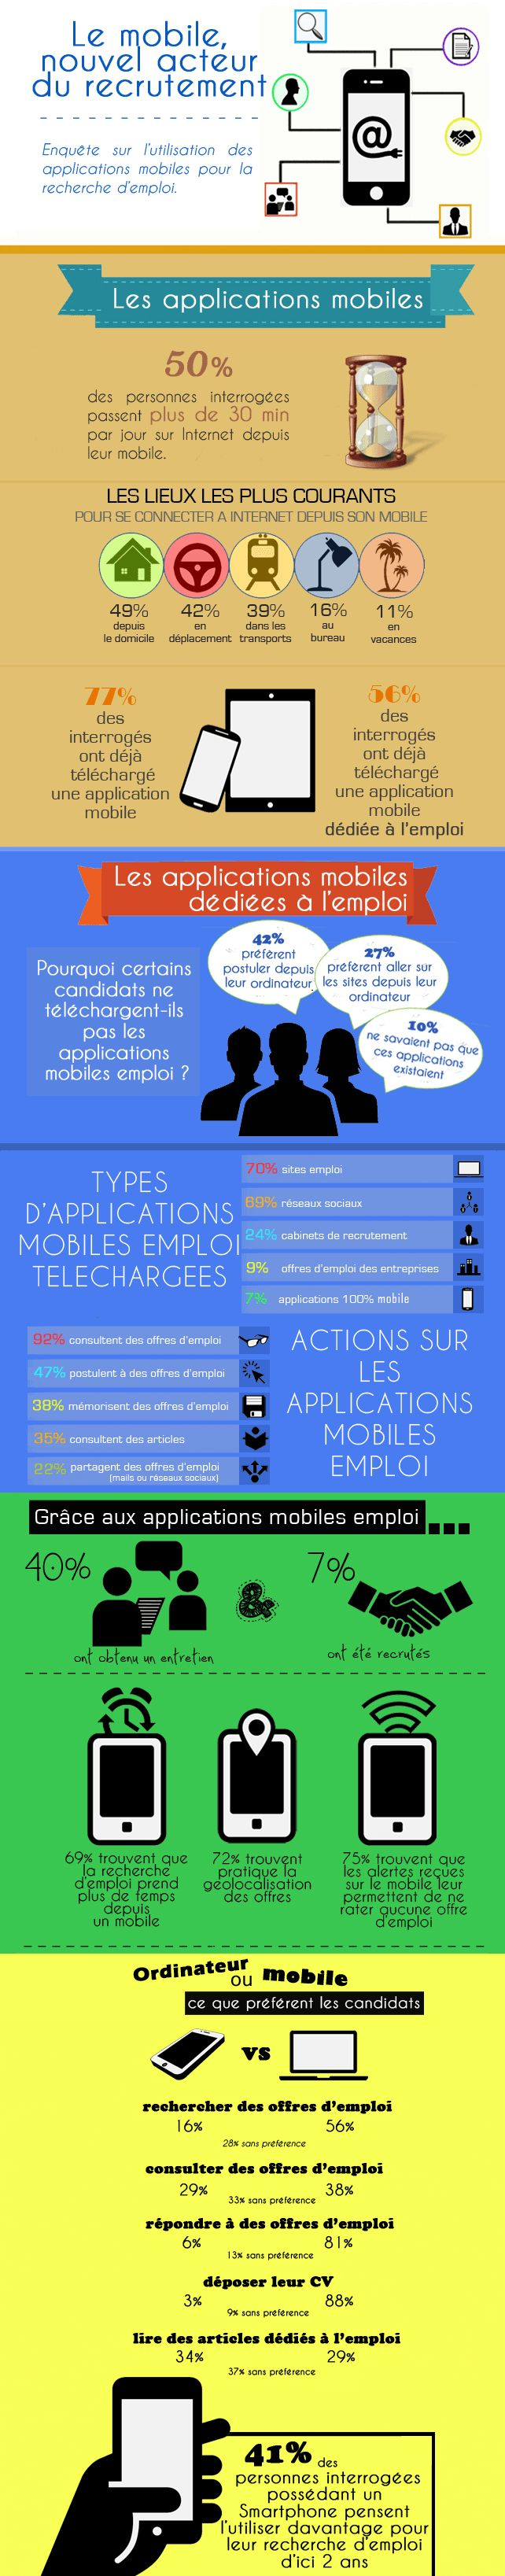 recrutement-mobile-infographie-final